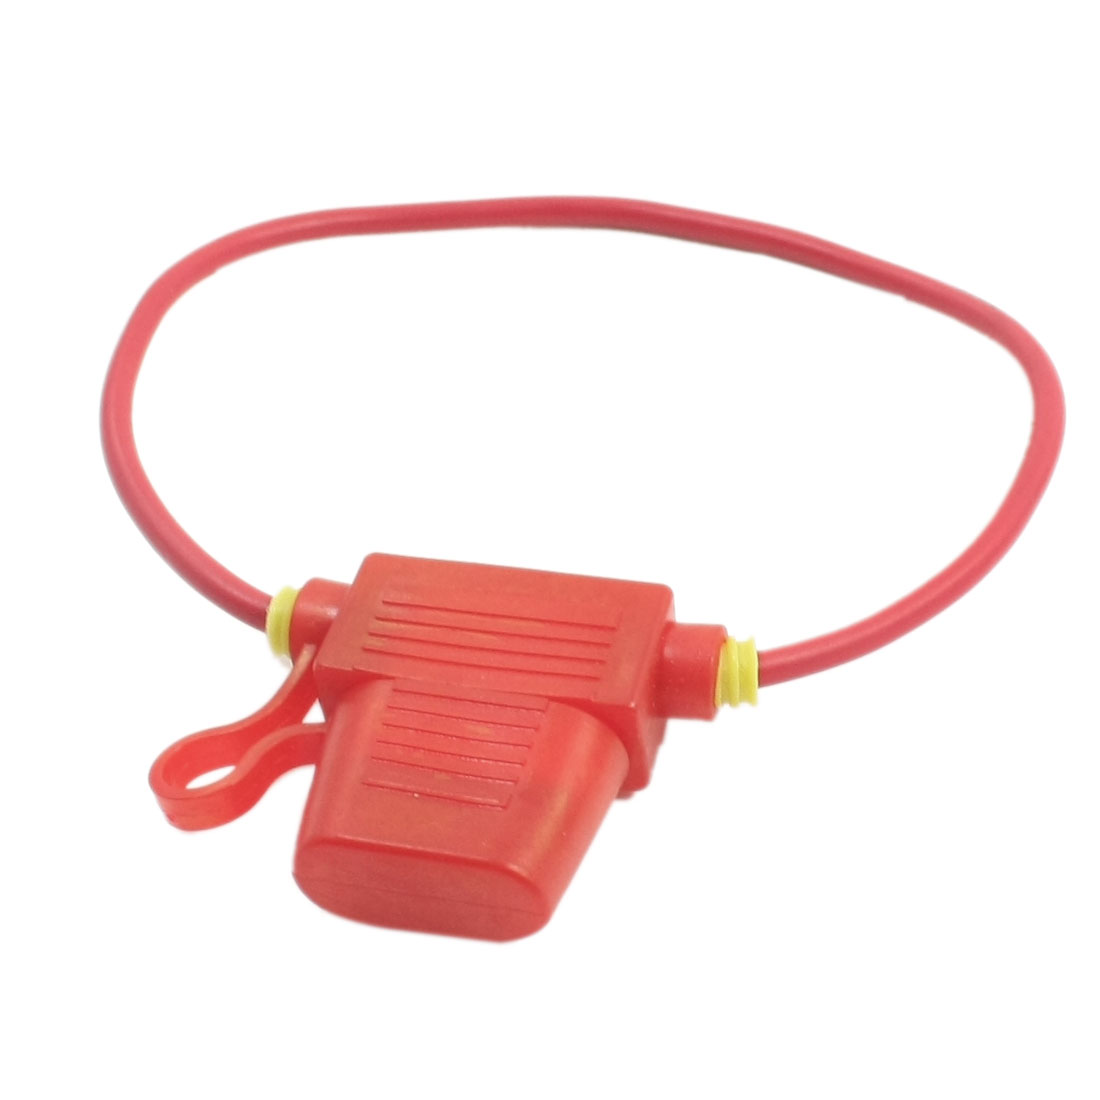 Unique Bargains 32V 10A Fuse + Wire Leads Van Automobile Truck Blade Fuse Holder Red